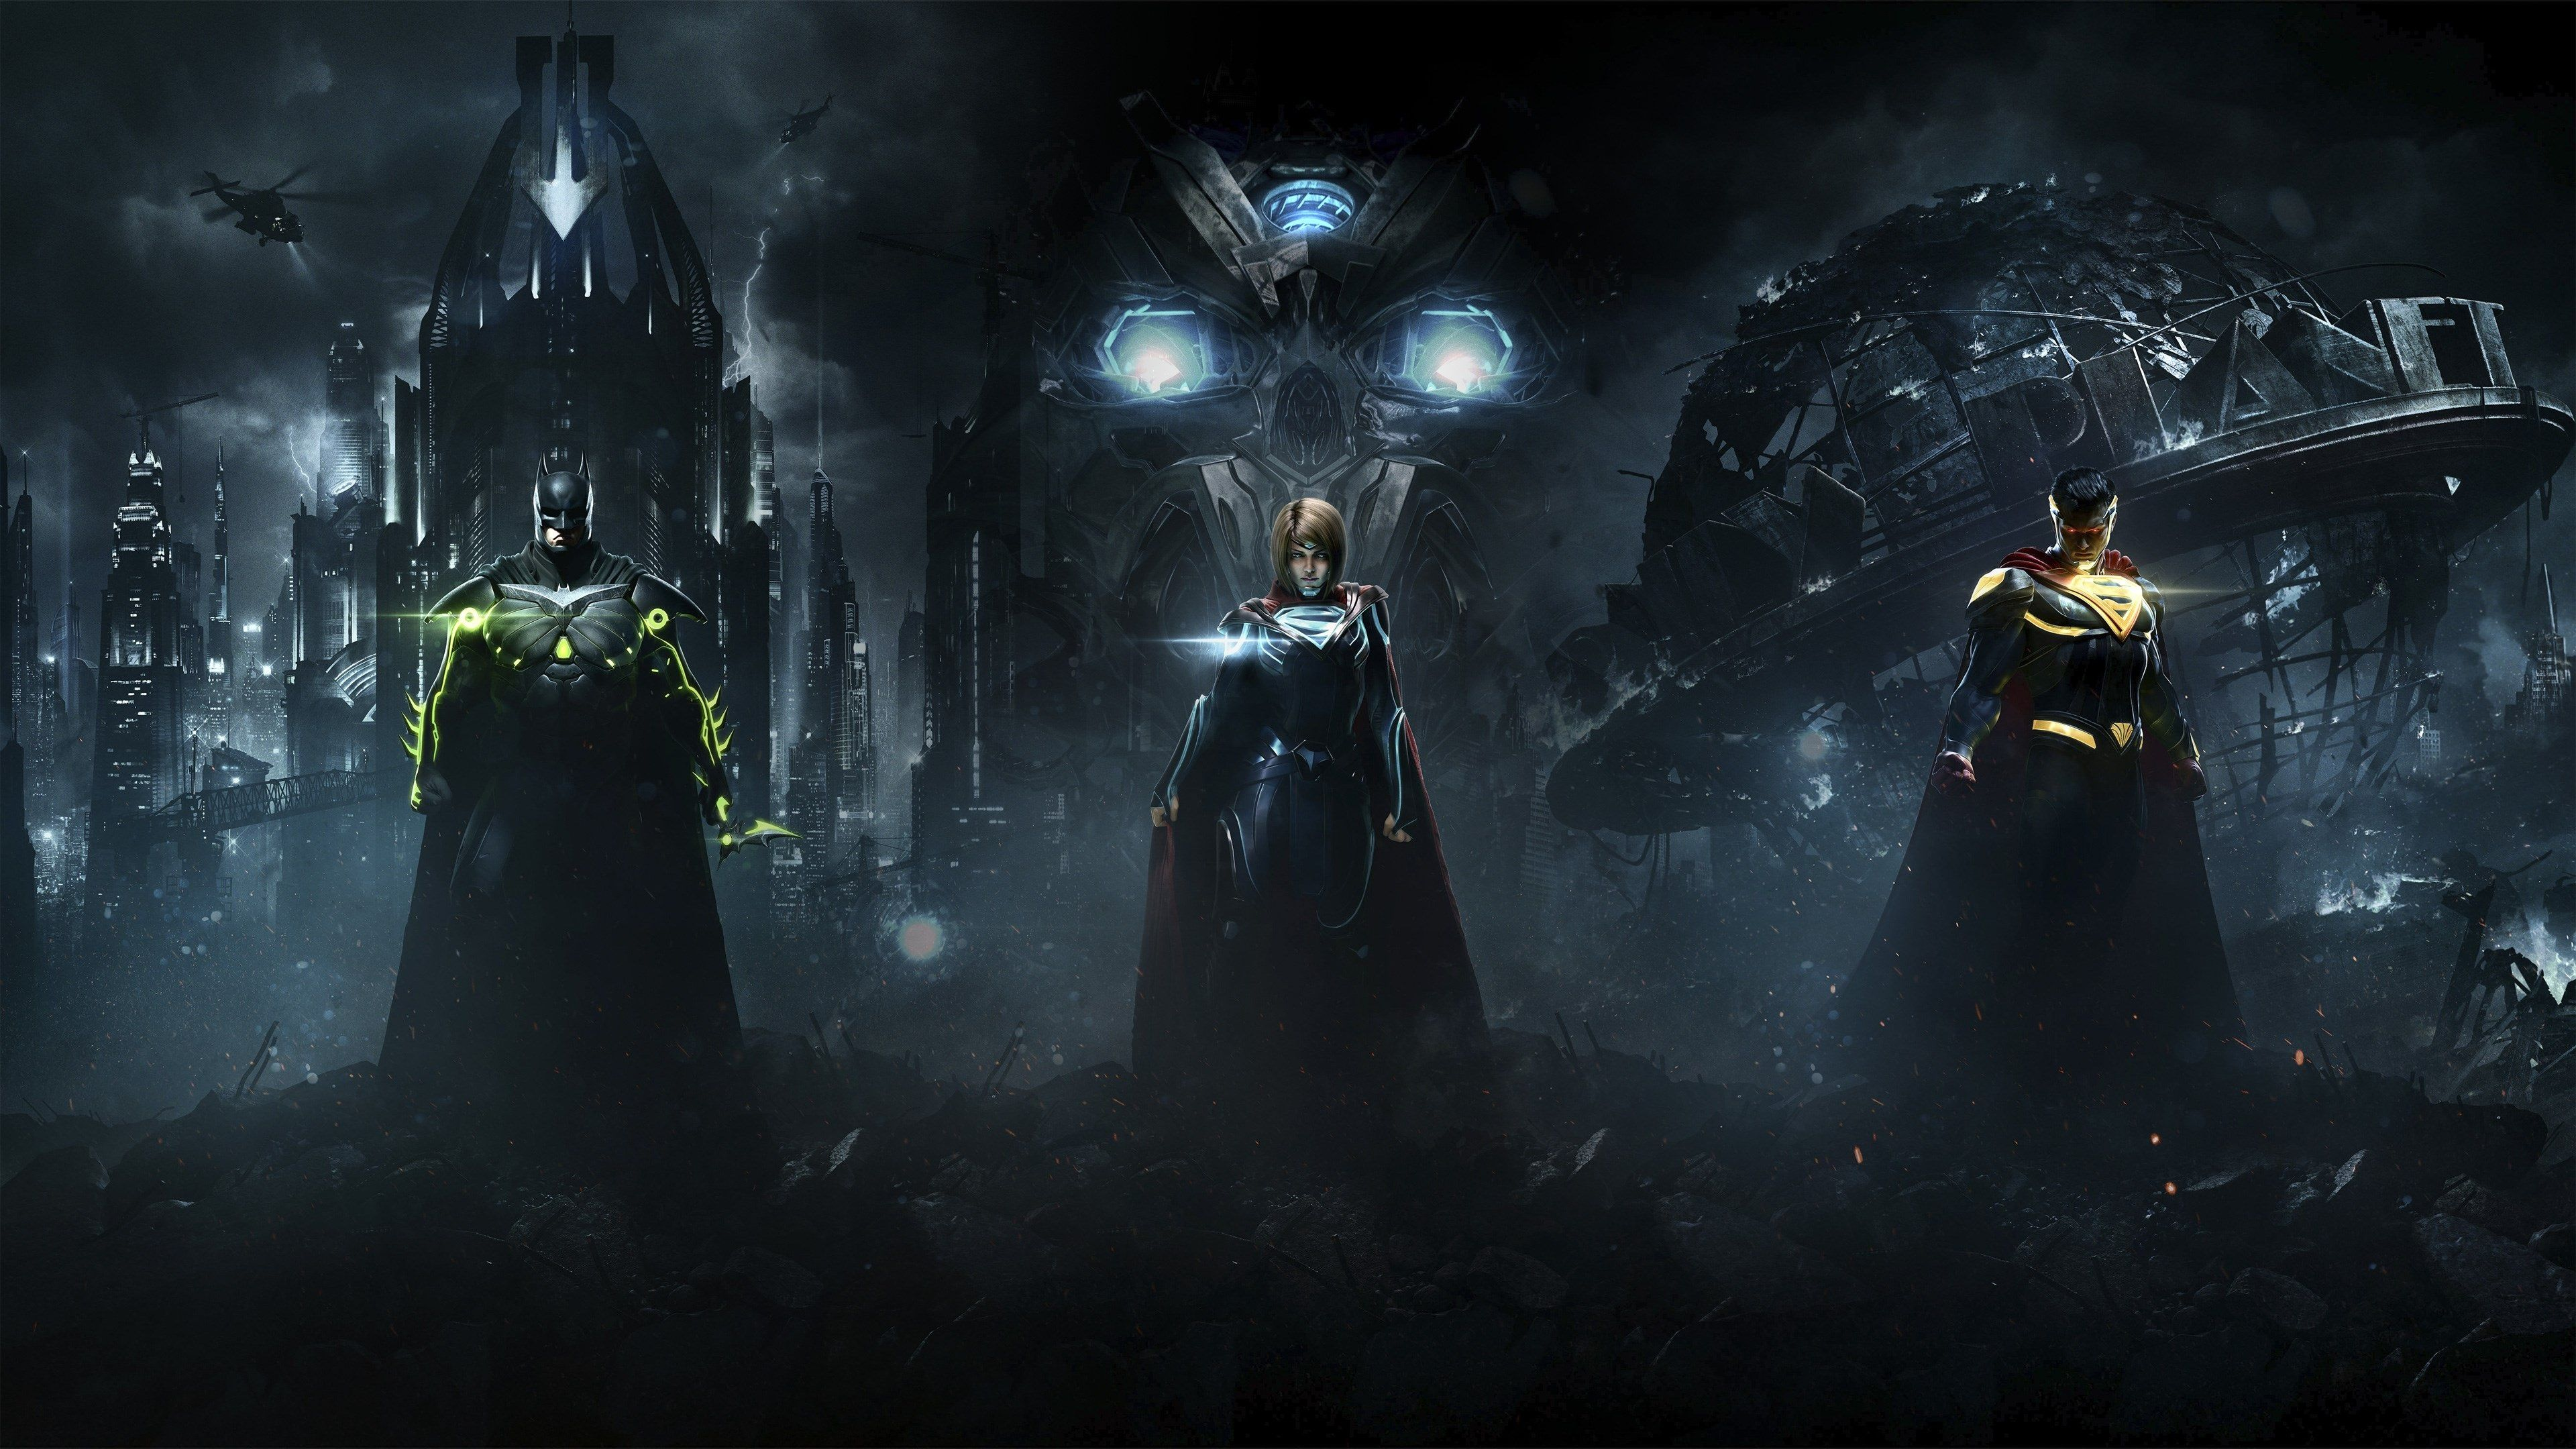 Injustice Wallpapers Top Free Injustice Backgrounds